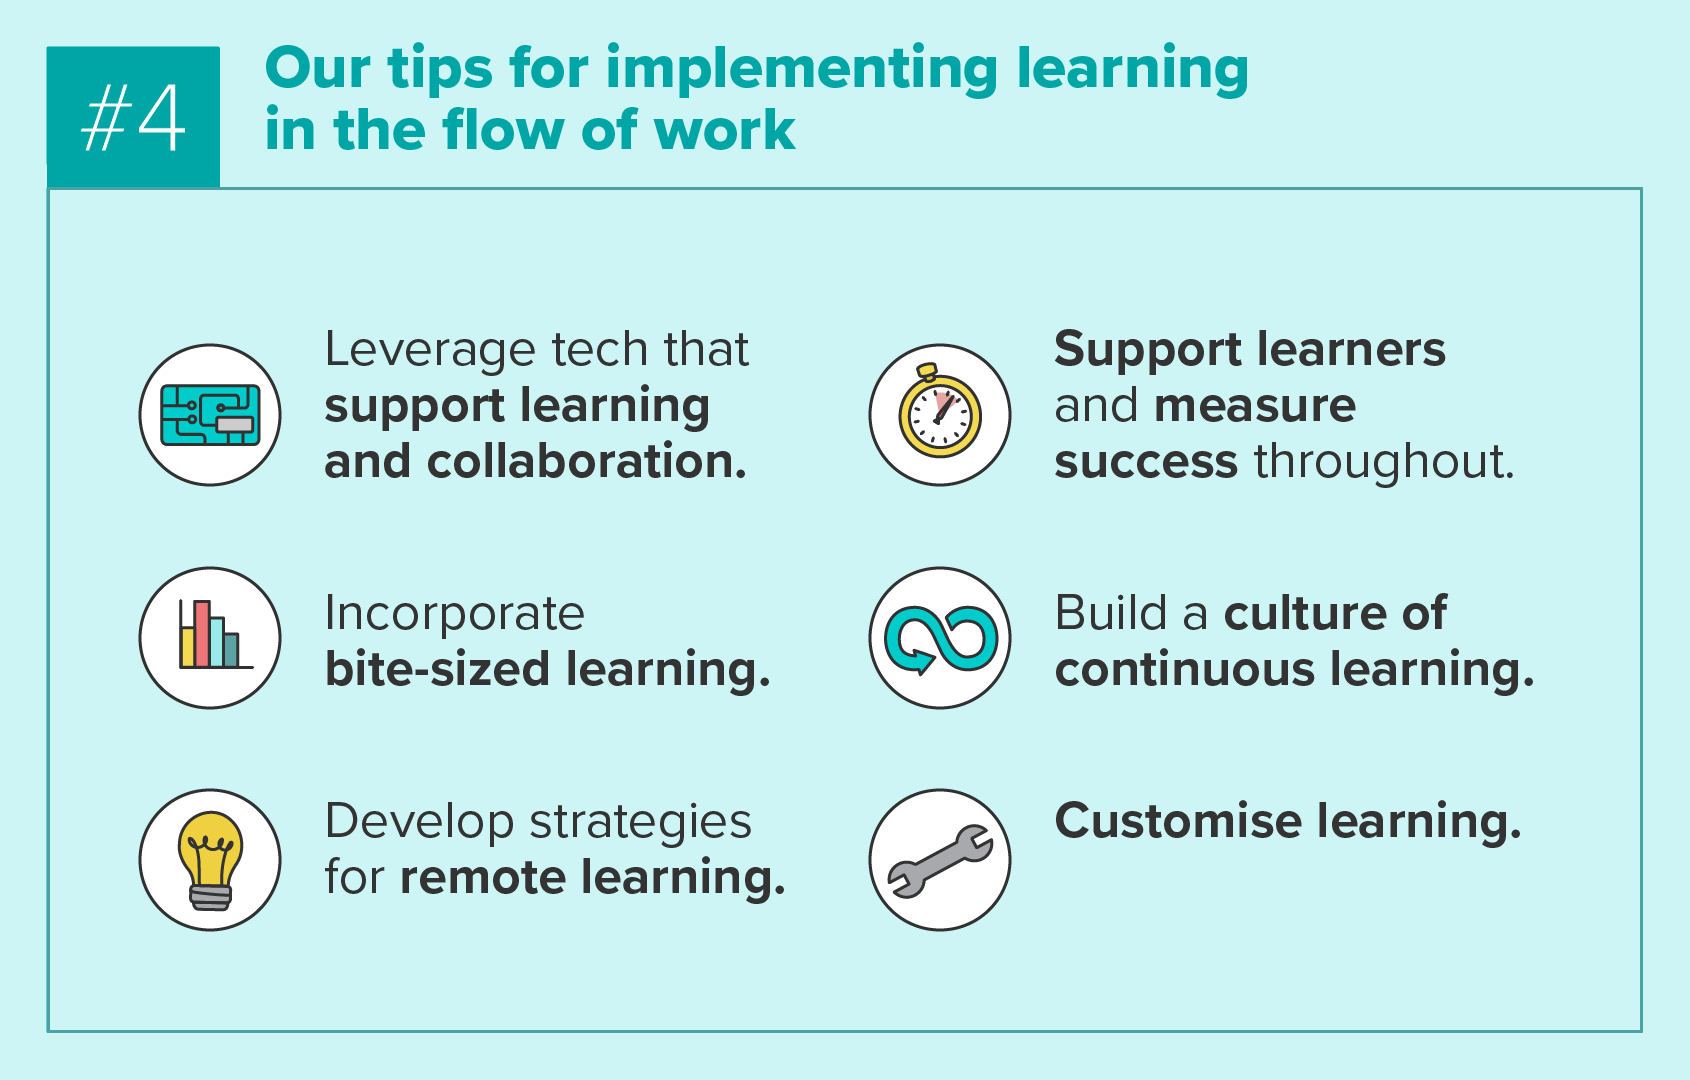 Our tips for implementing learning in the flow of work